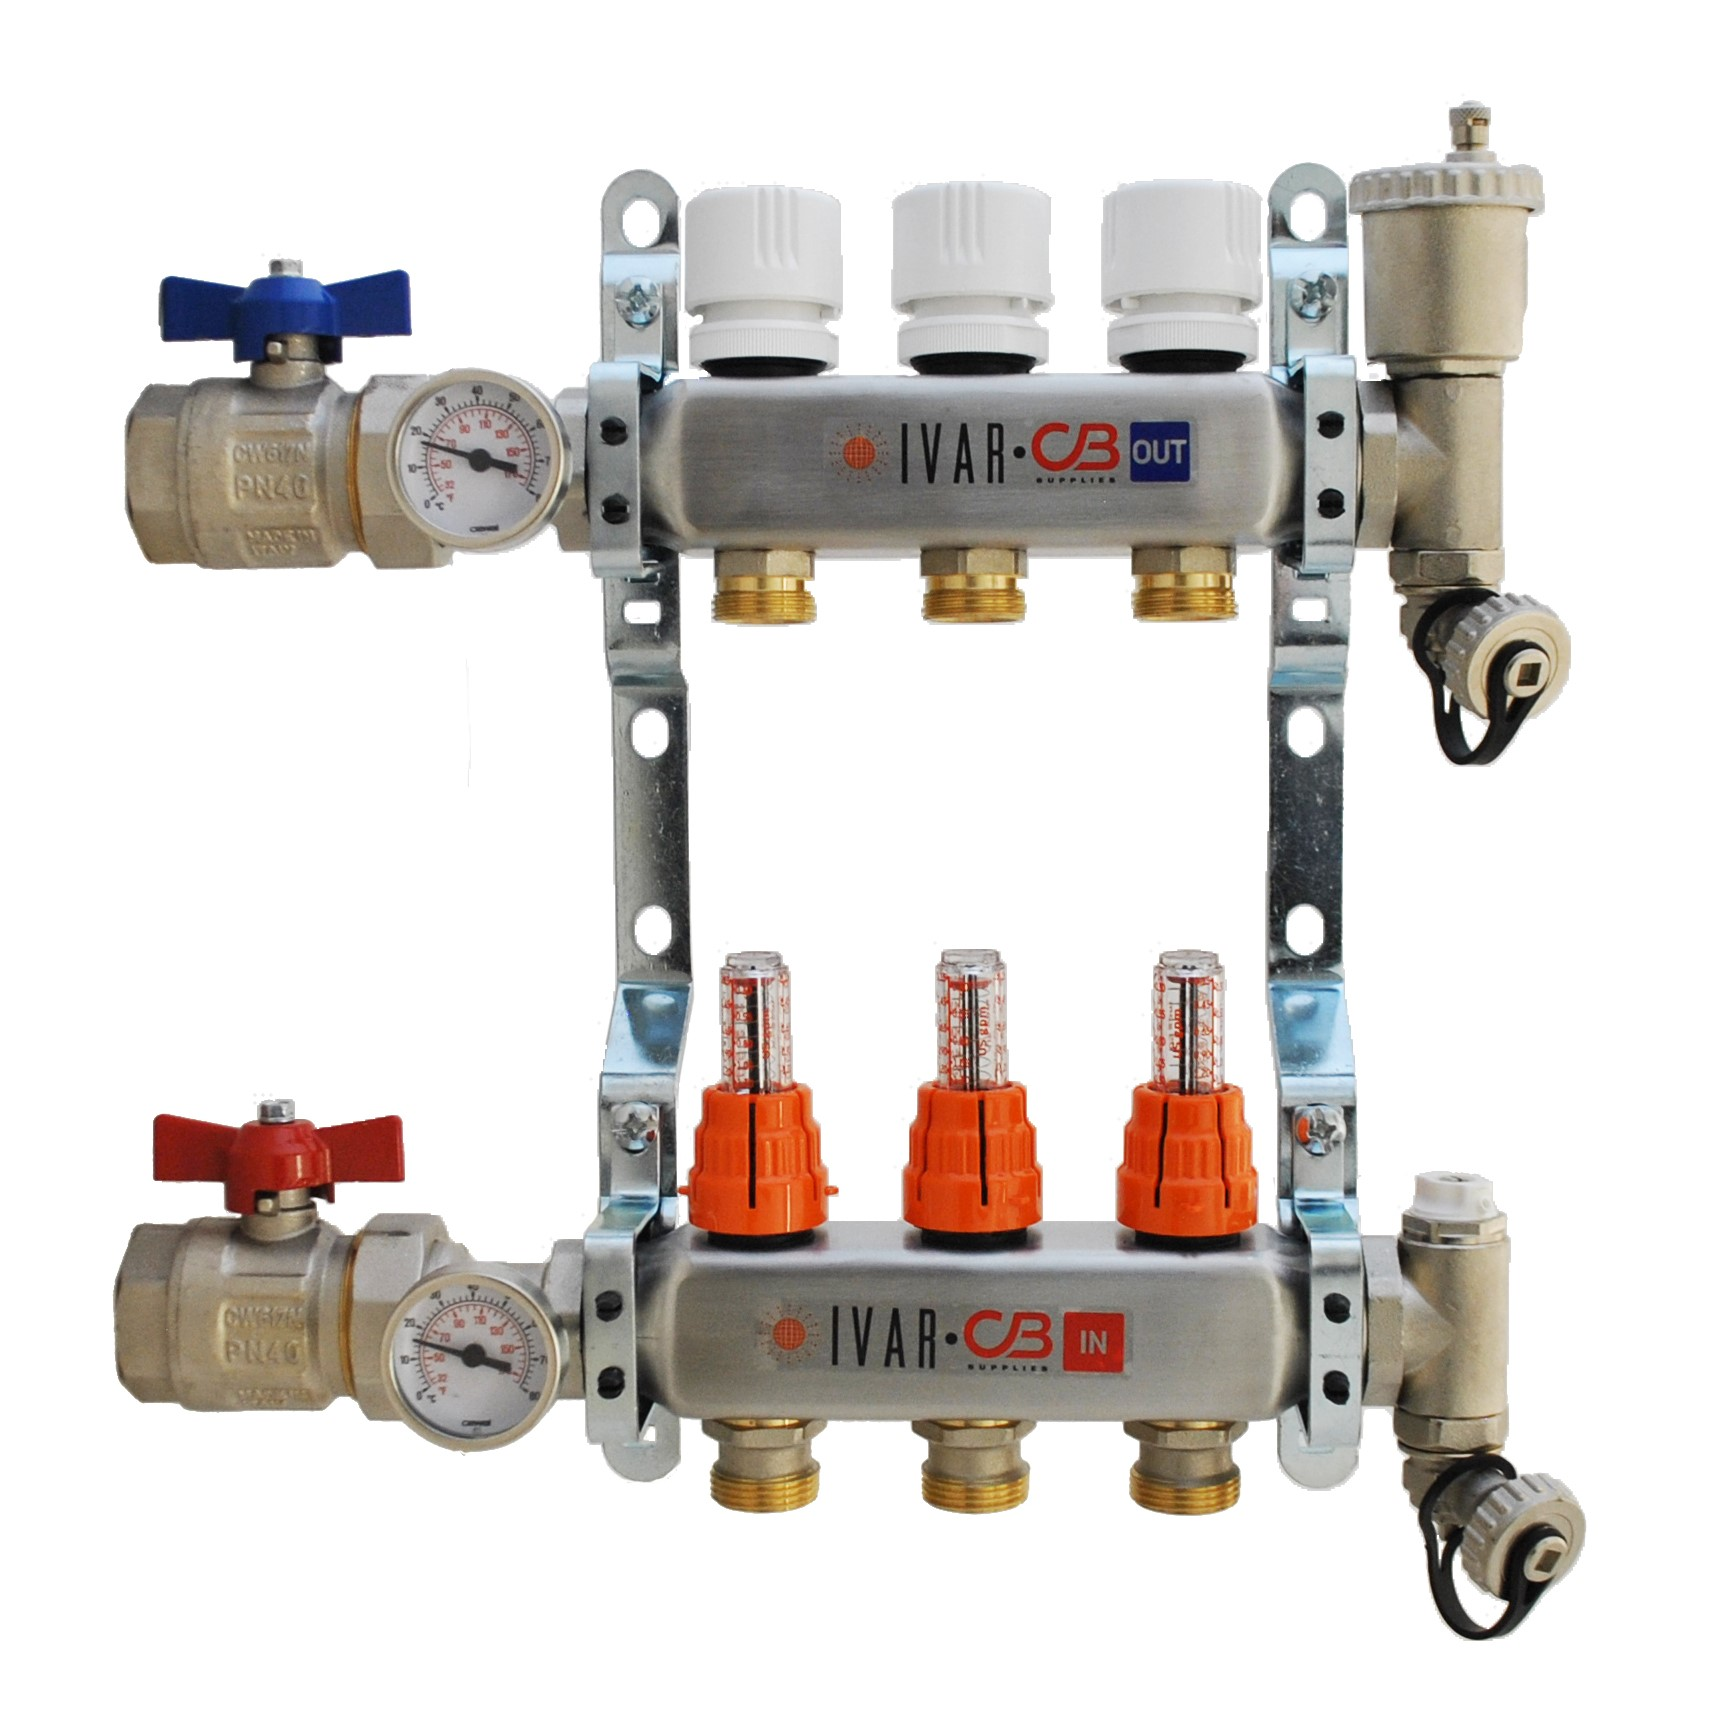 "1"" IVAR Stainless Steel Hydronic Manifold for Radiant Floor Heating - 3 ports"